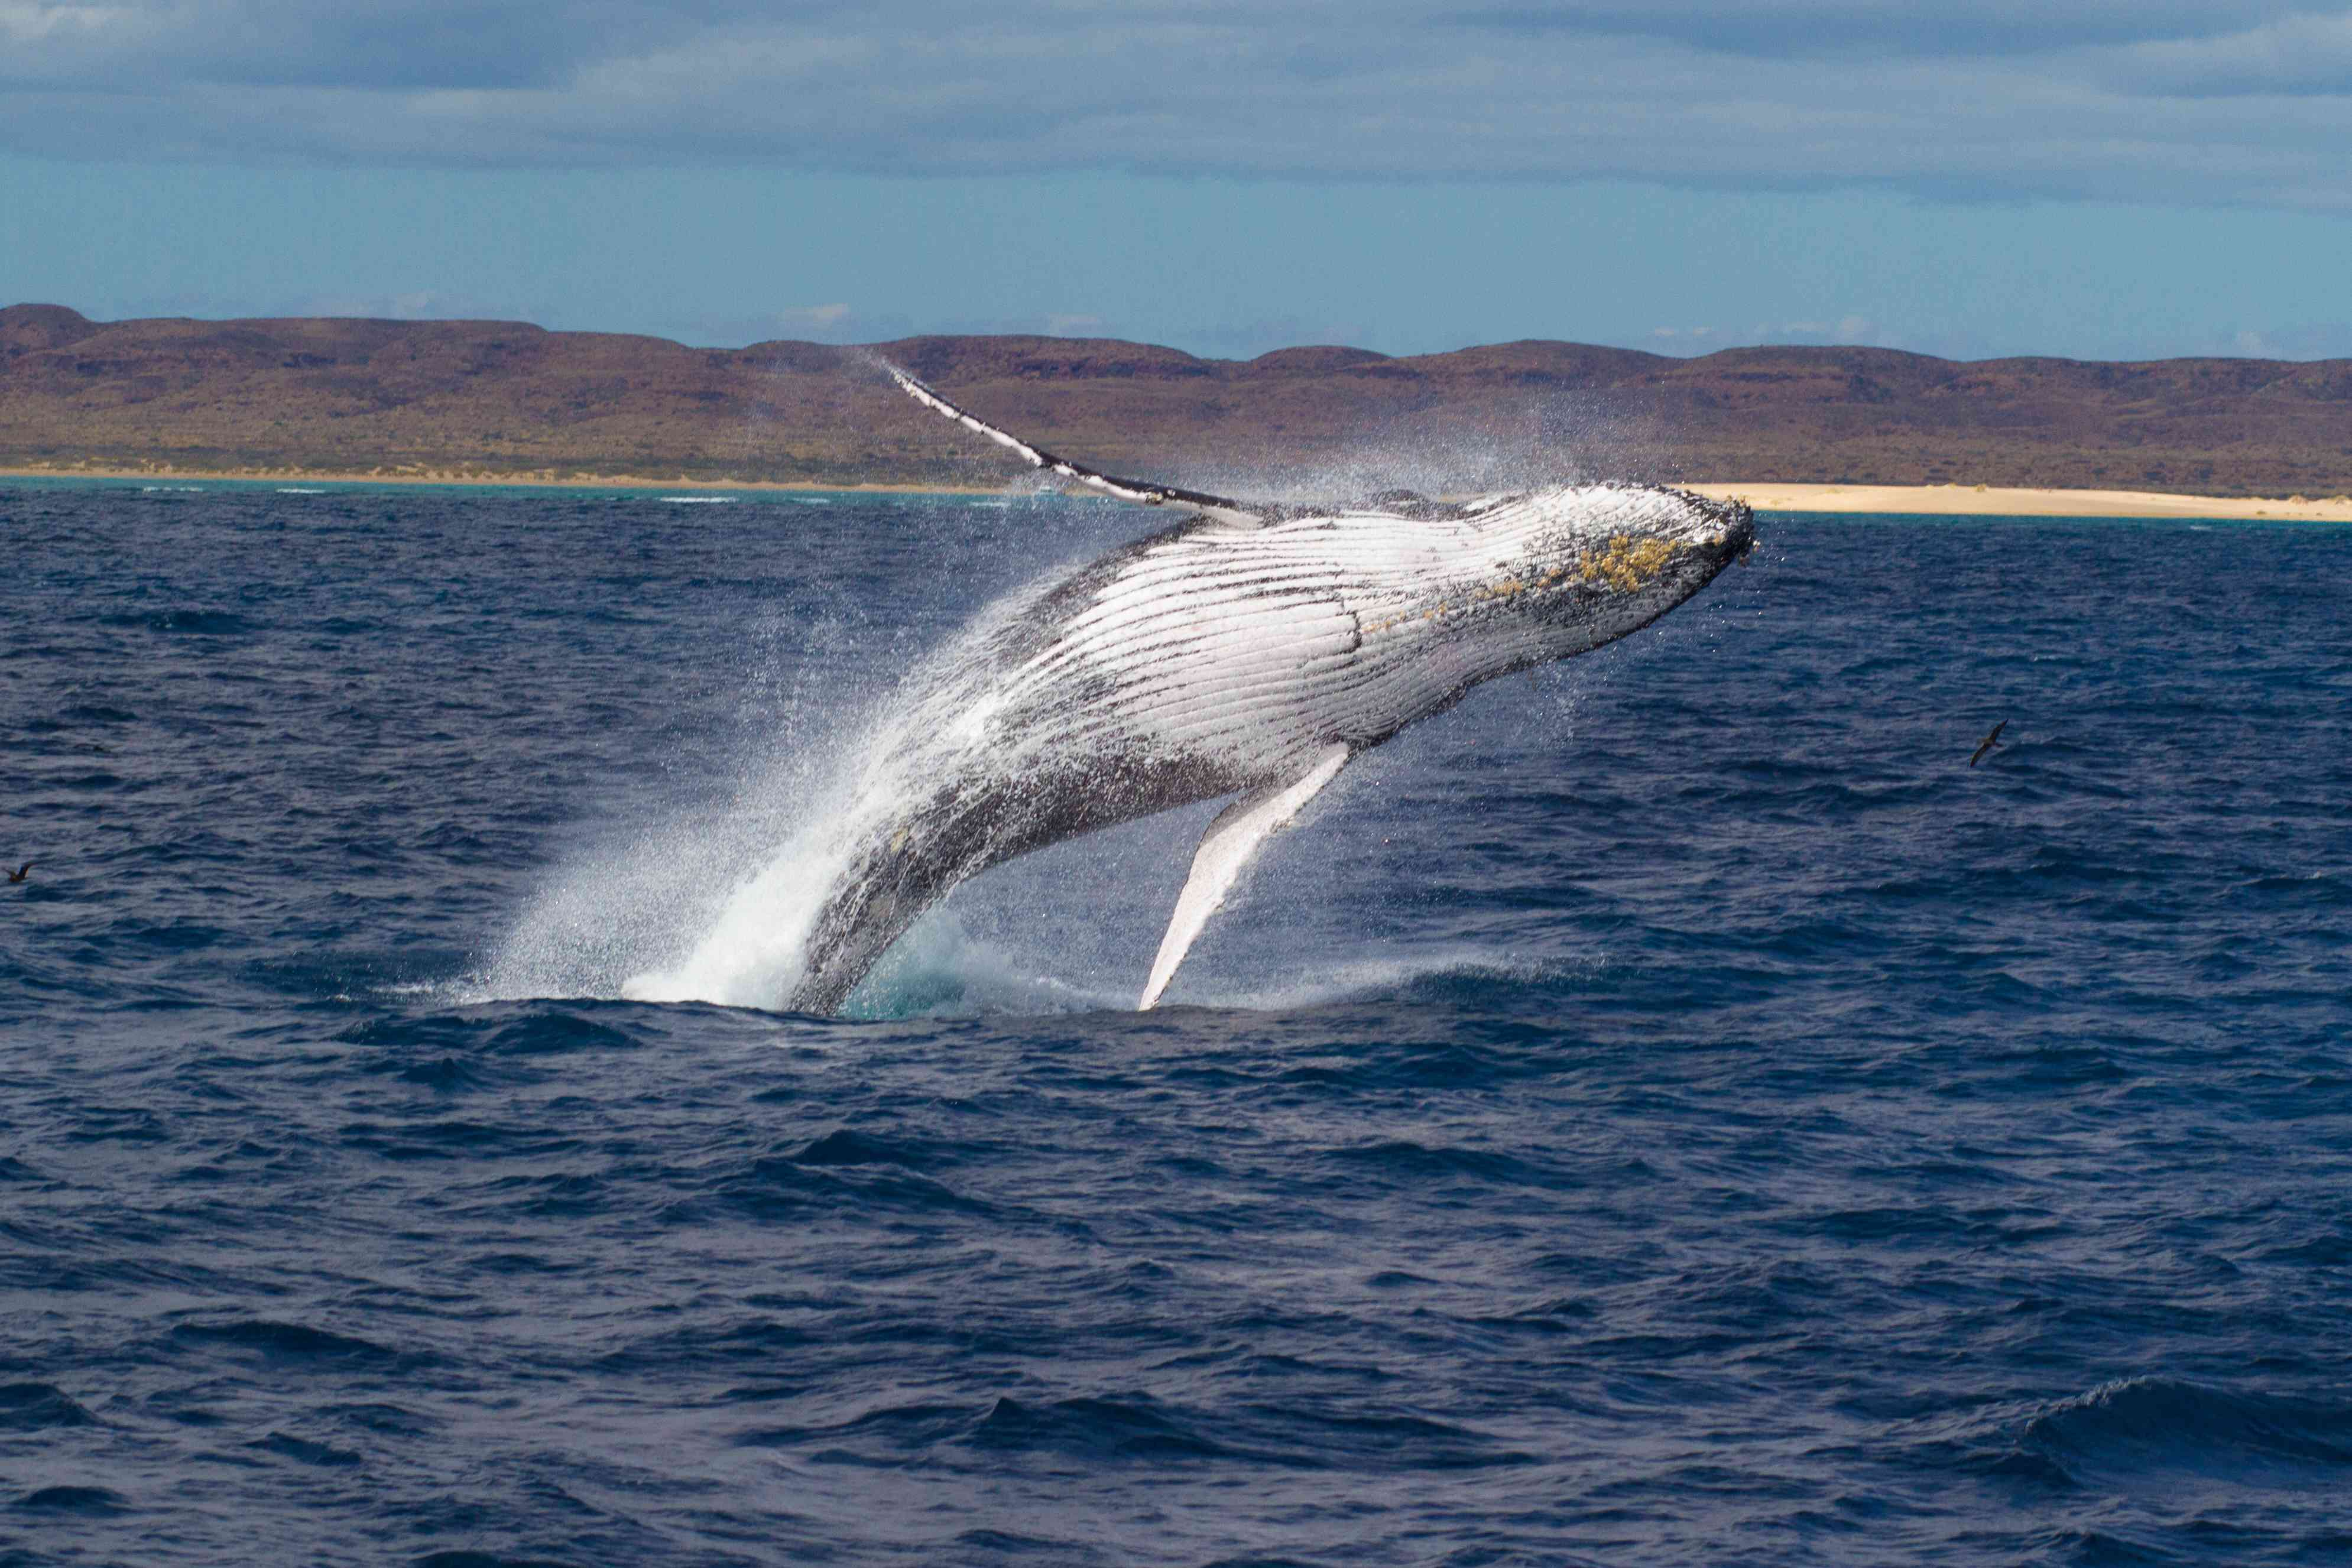 Humpback Whale breaching powerfully with West Australian coastline in the background